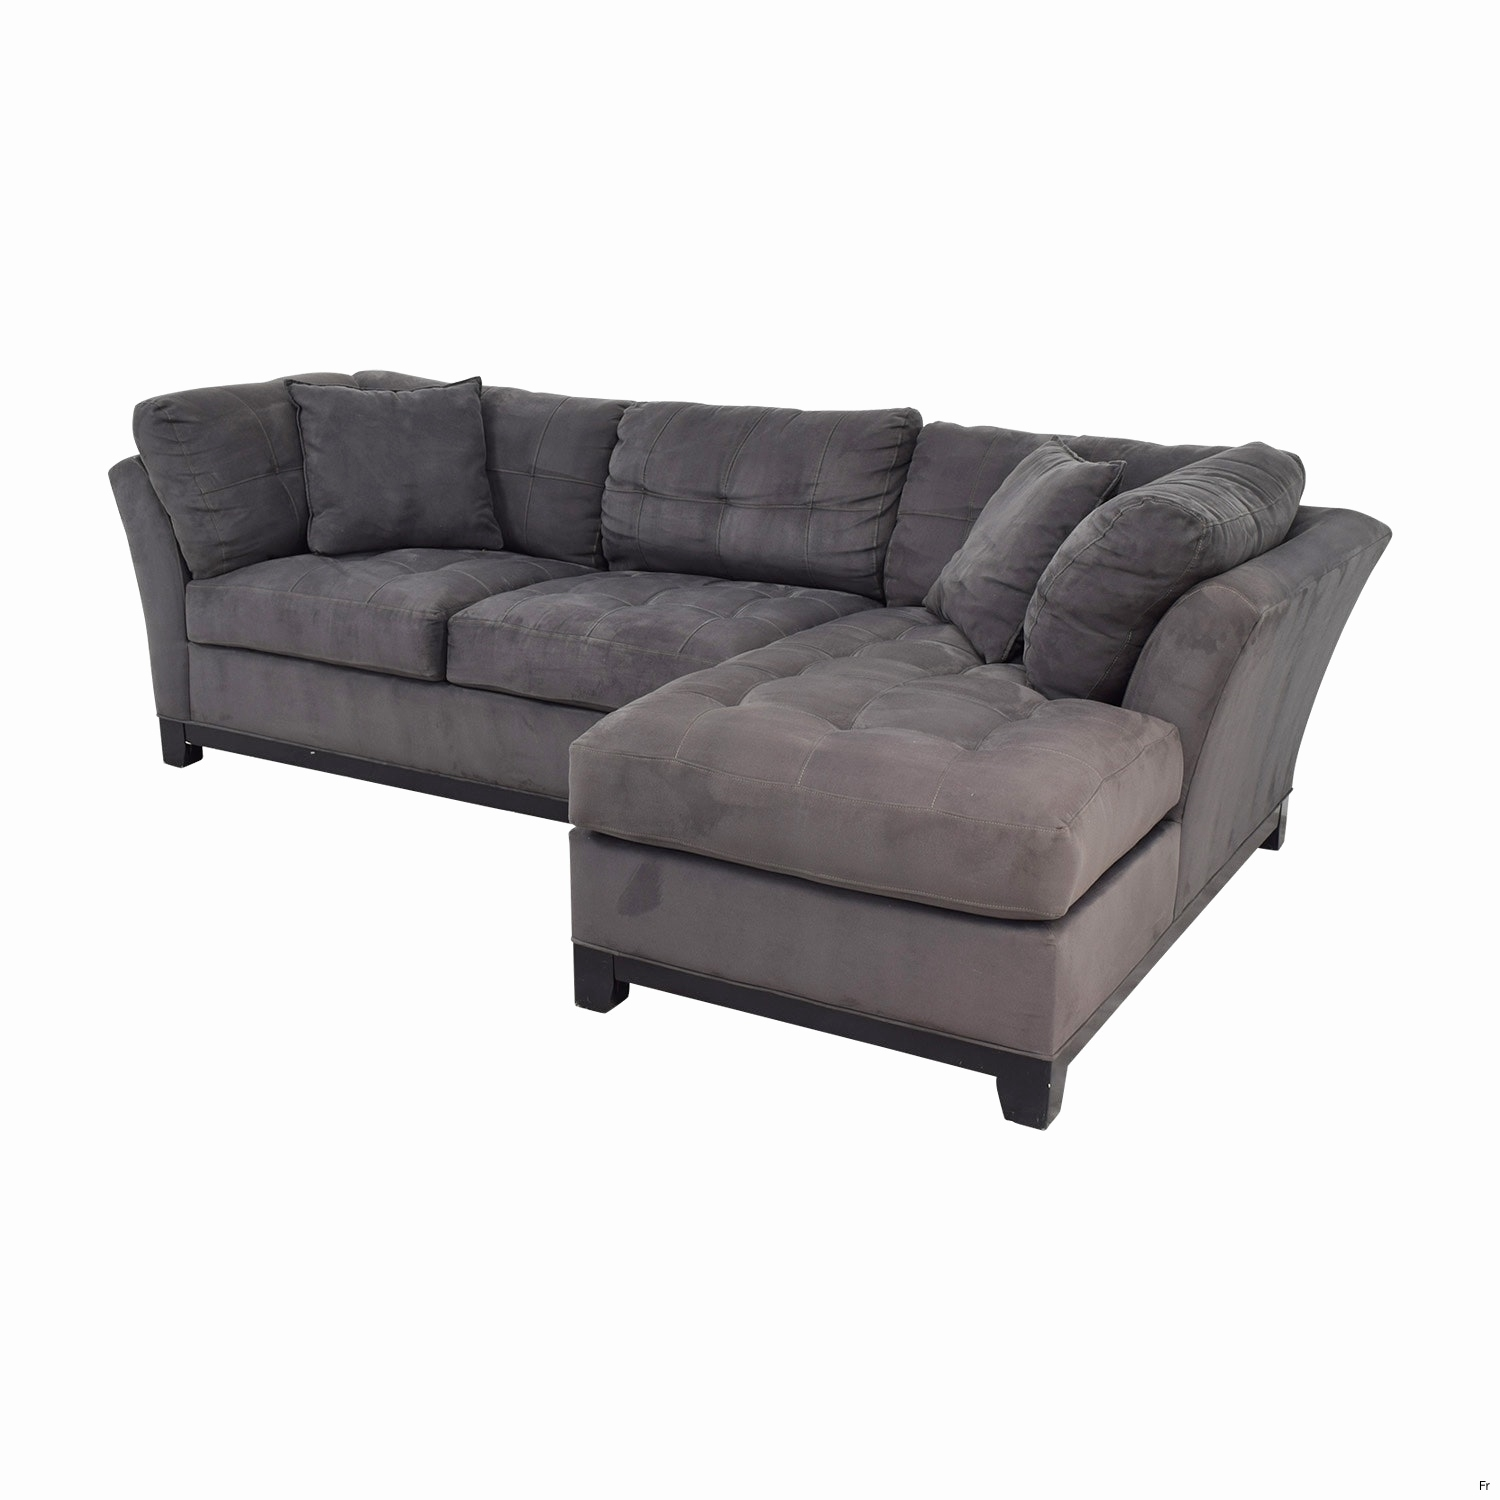 Awesome 7 Seat Sectional Sofa Pictures – Home Design In Raymour And Flanigan Sectional Sofas (View 4 of 10)